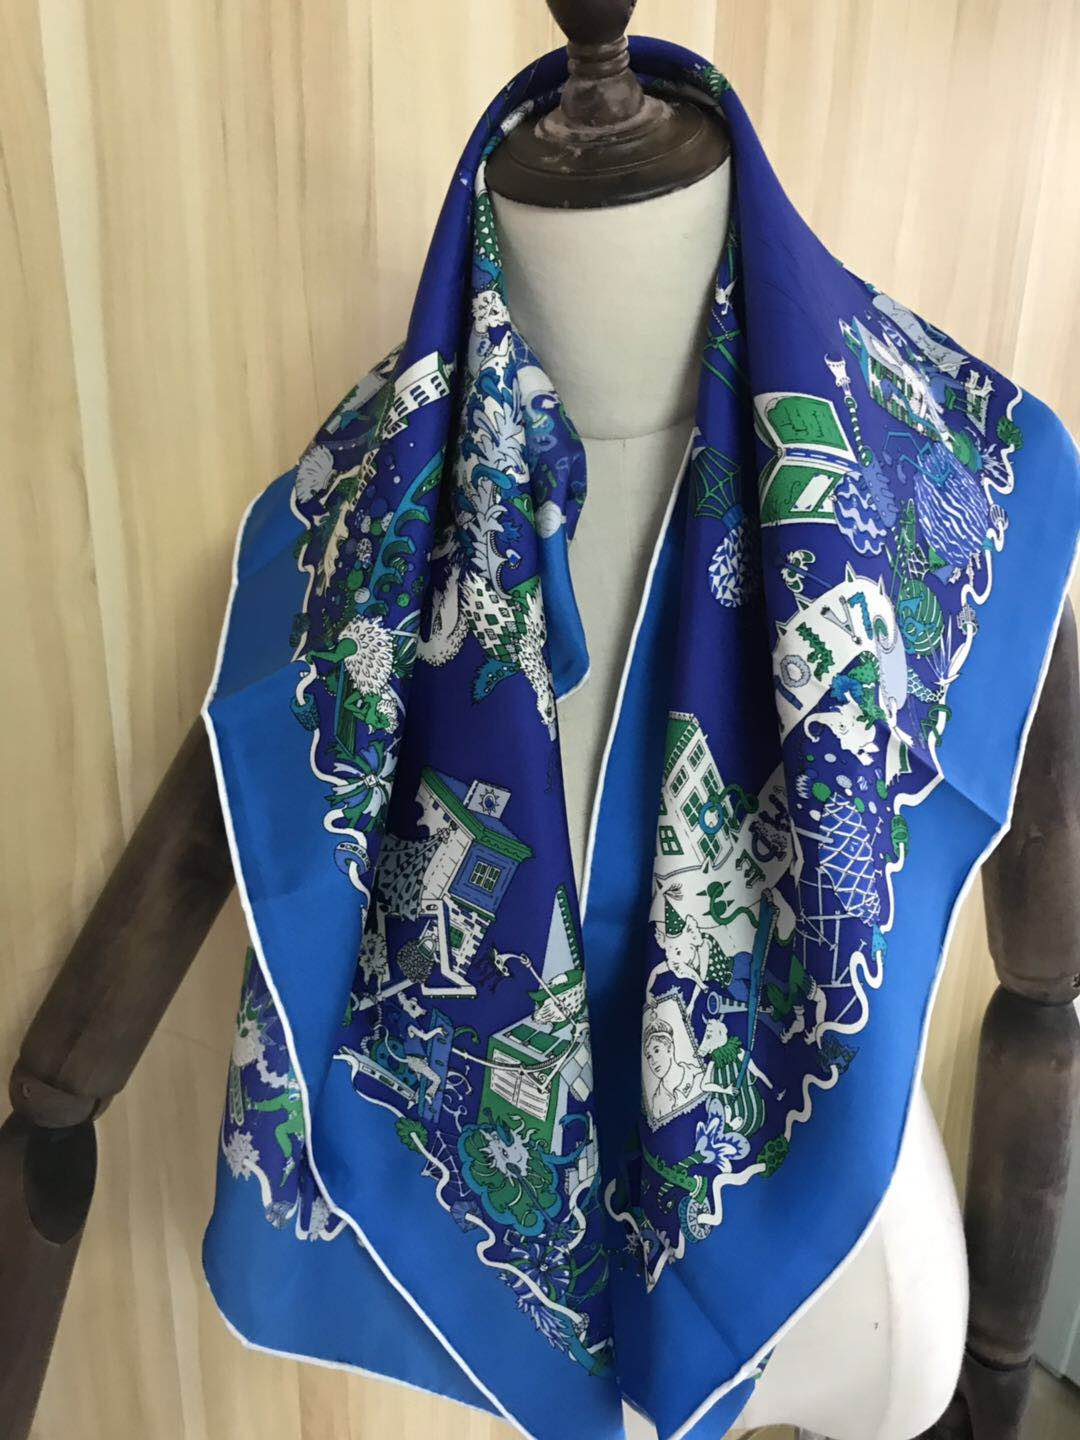 2020 new arrival spring autumn classic carriage 100% pure silk scarf twill hand made roll 90*90 cm shawl wrap for women lady